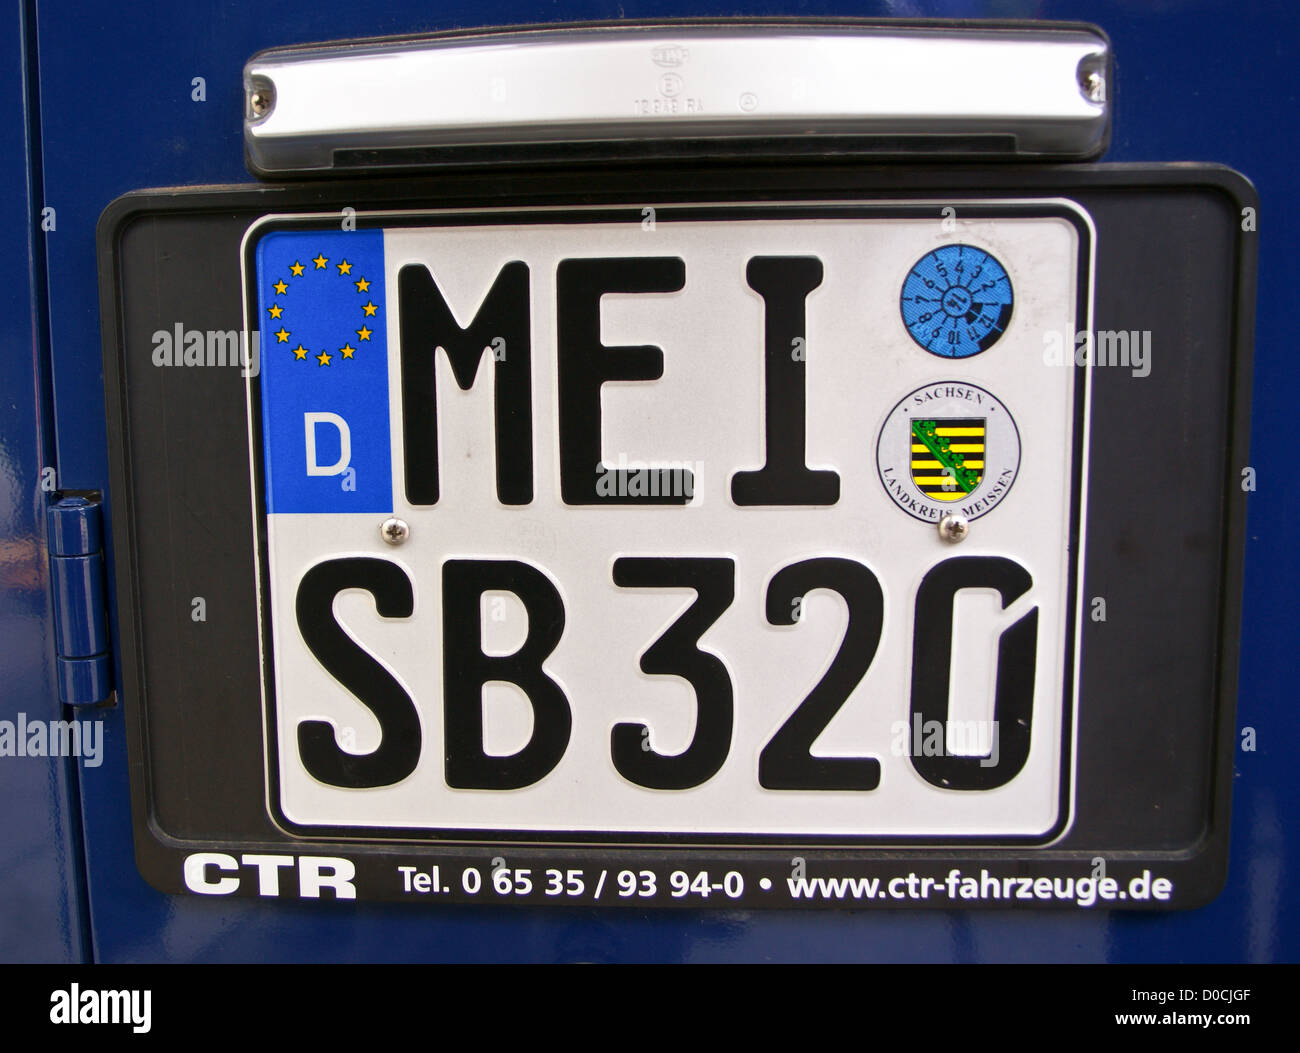 A car number plate from Meissen, Sachsen, Saxony, Germany - Stock Image